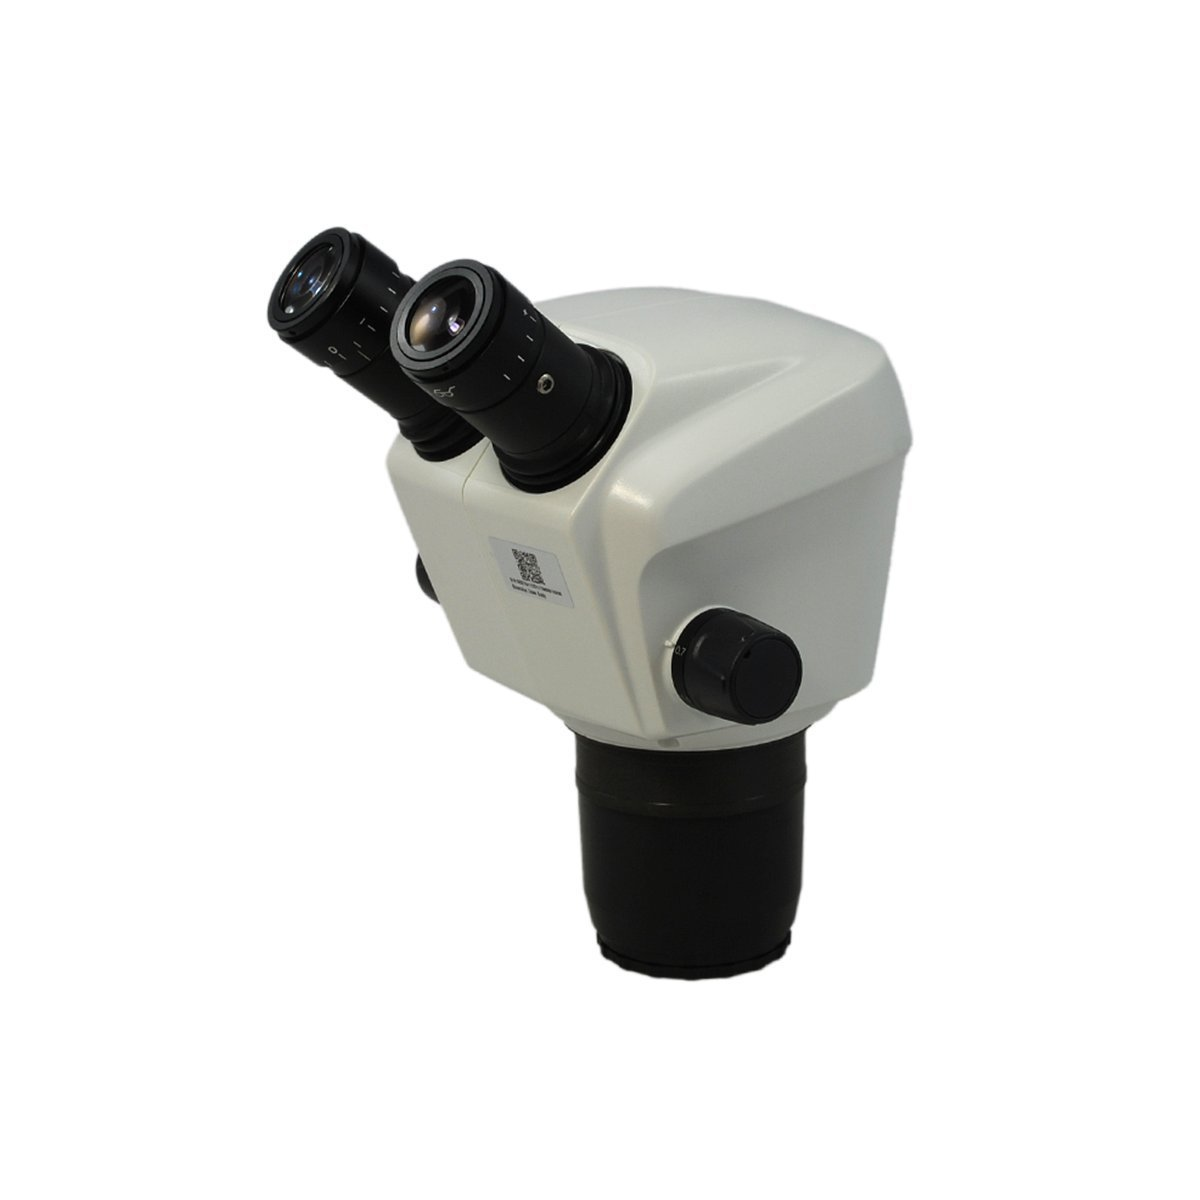 7-45X Eyepiece Field of View Dia. 22mm Eyepiece Field of View Dia. 24mm Objective Working Distance 110mm Binocular Zoom Body SZ27011221